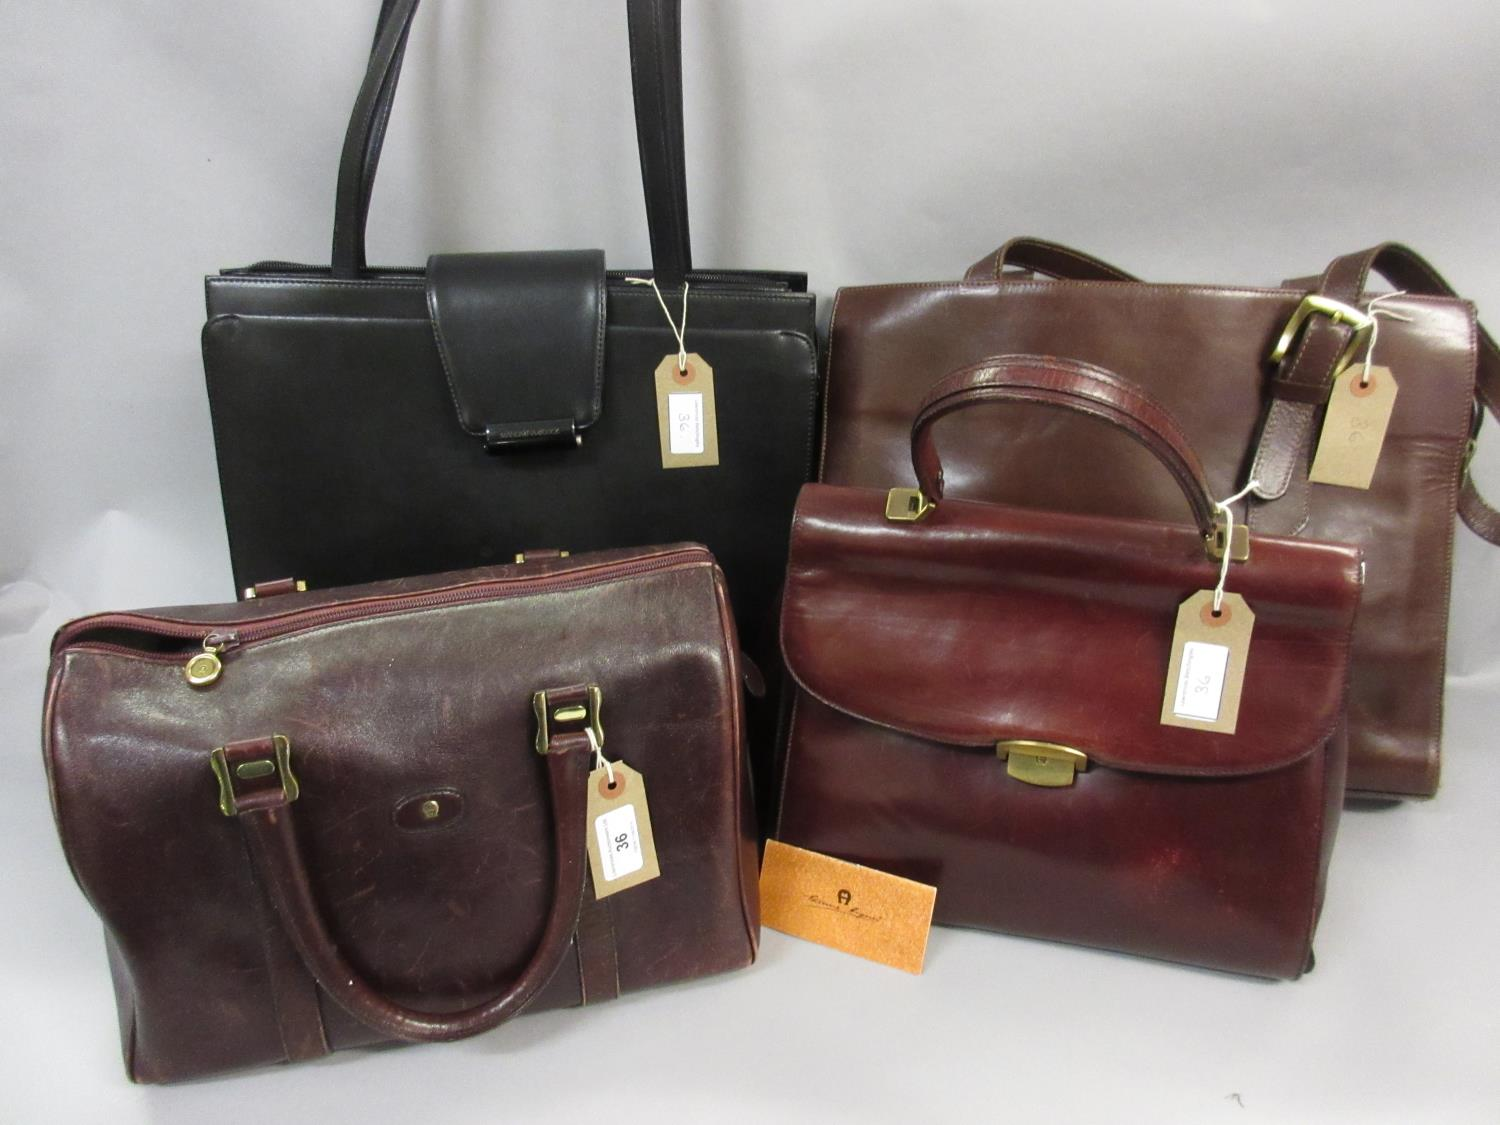 Lot 36 - Etienne Aigner, small burgundy leather holdall, another burgundy Etienne Aigner handbag, together